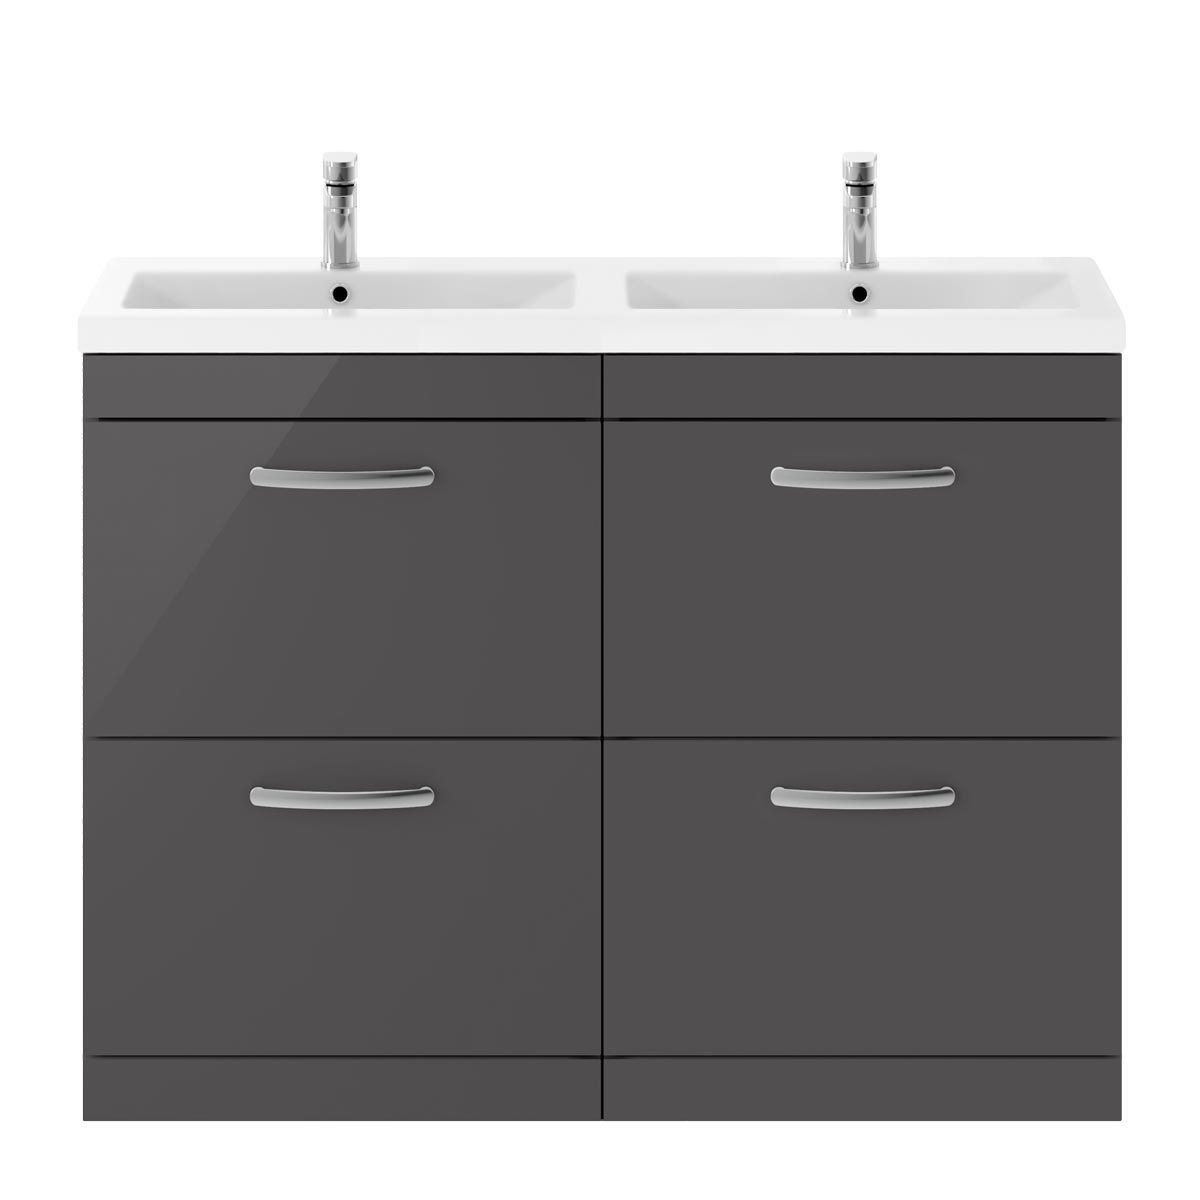 Nuie Athena Gloss Grey 4 Drawer Floor Standing Vanity Unit with Ceramic Double Basin 1200mm